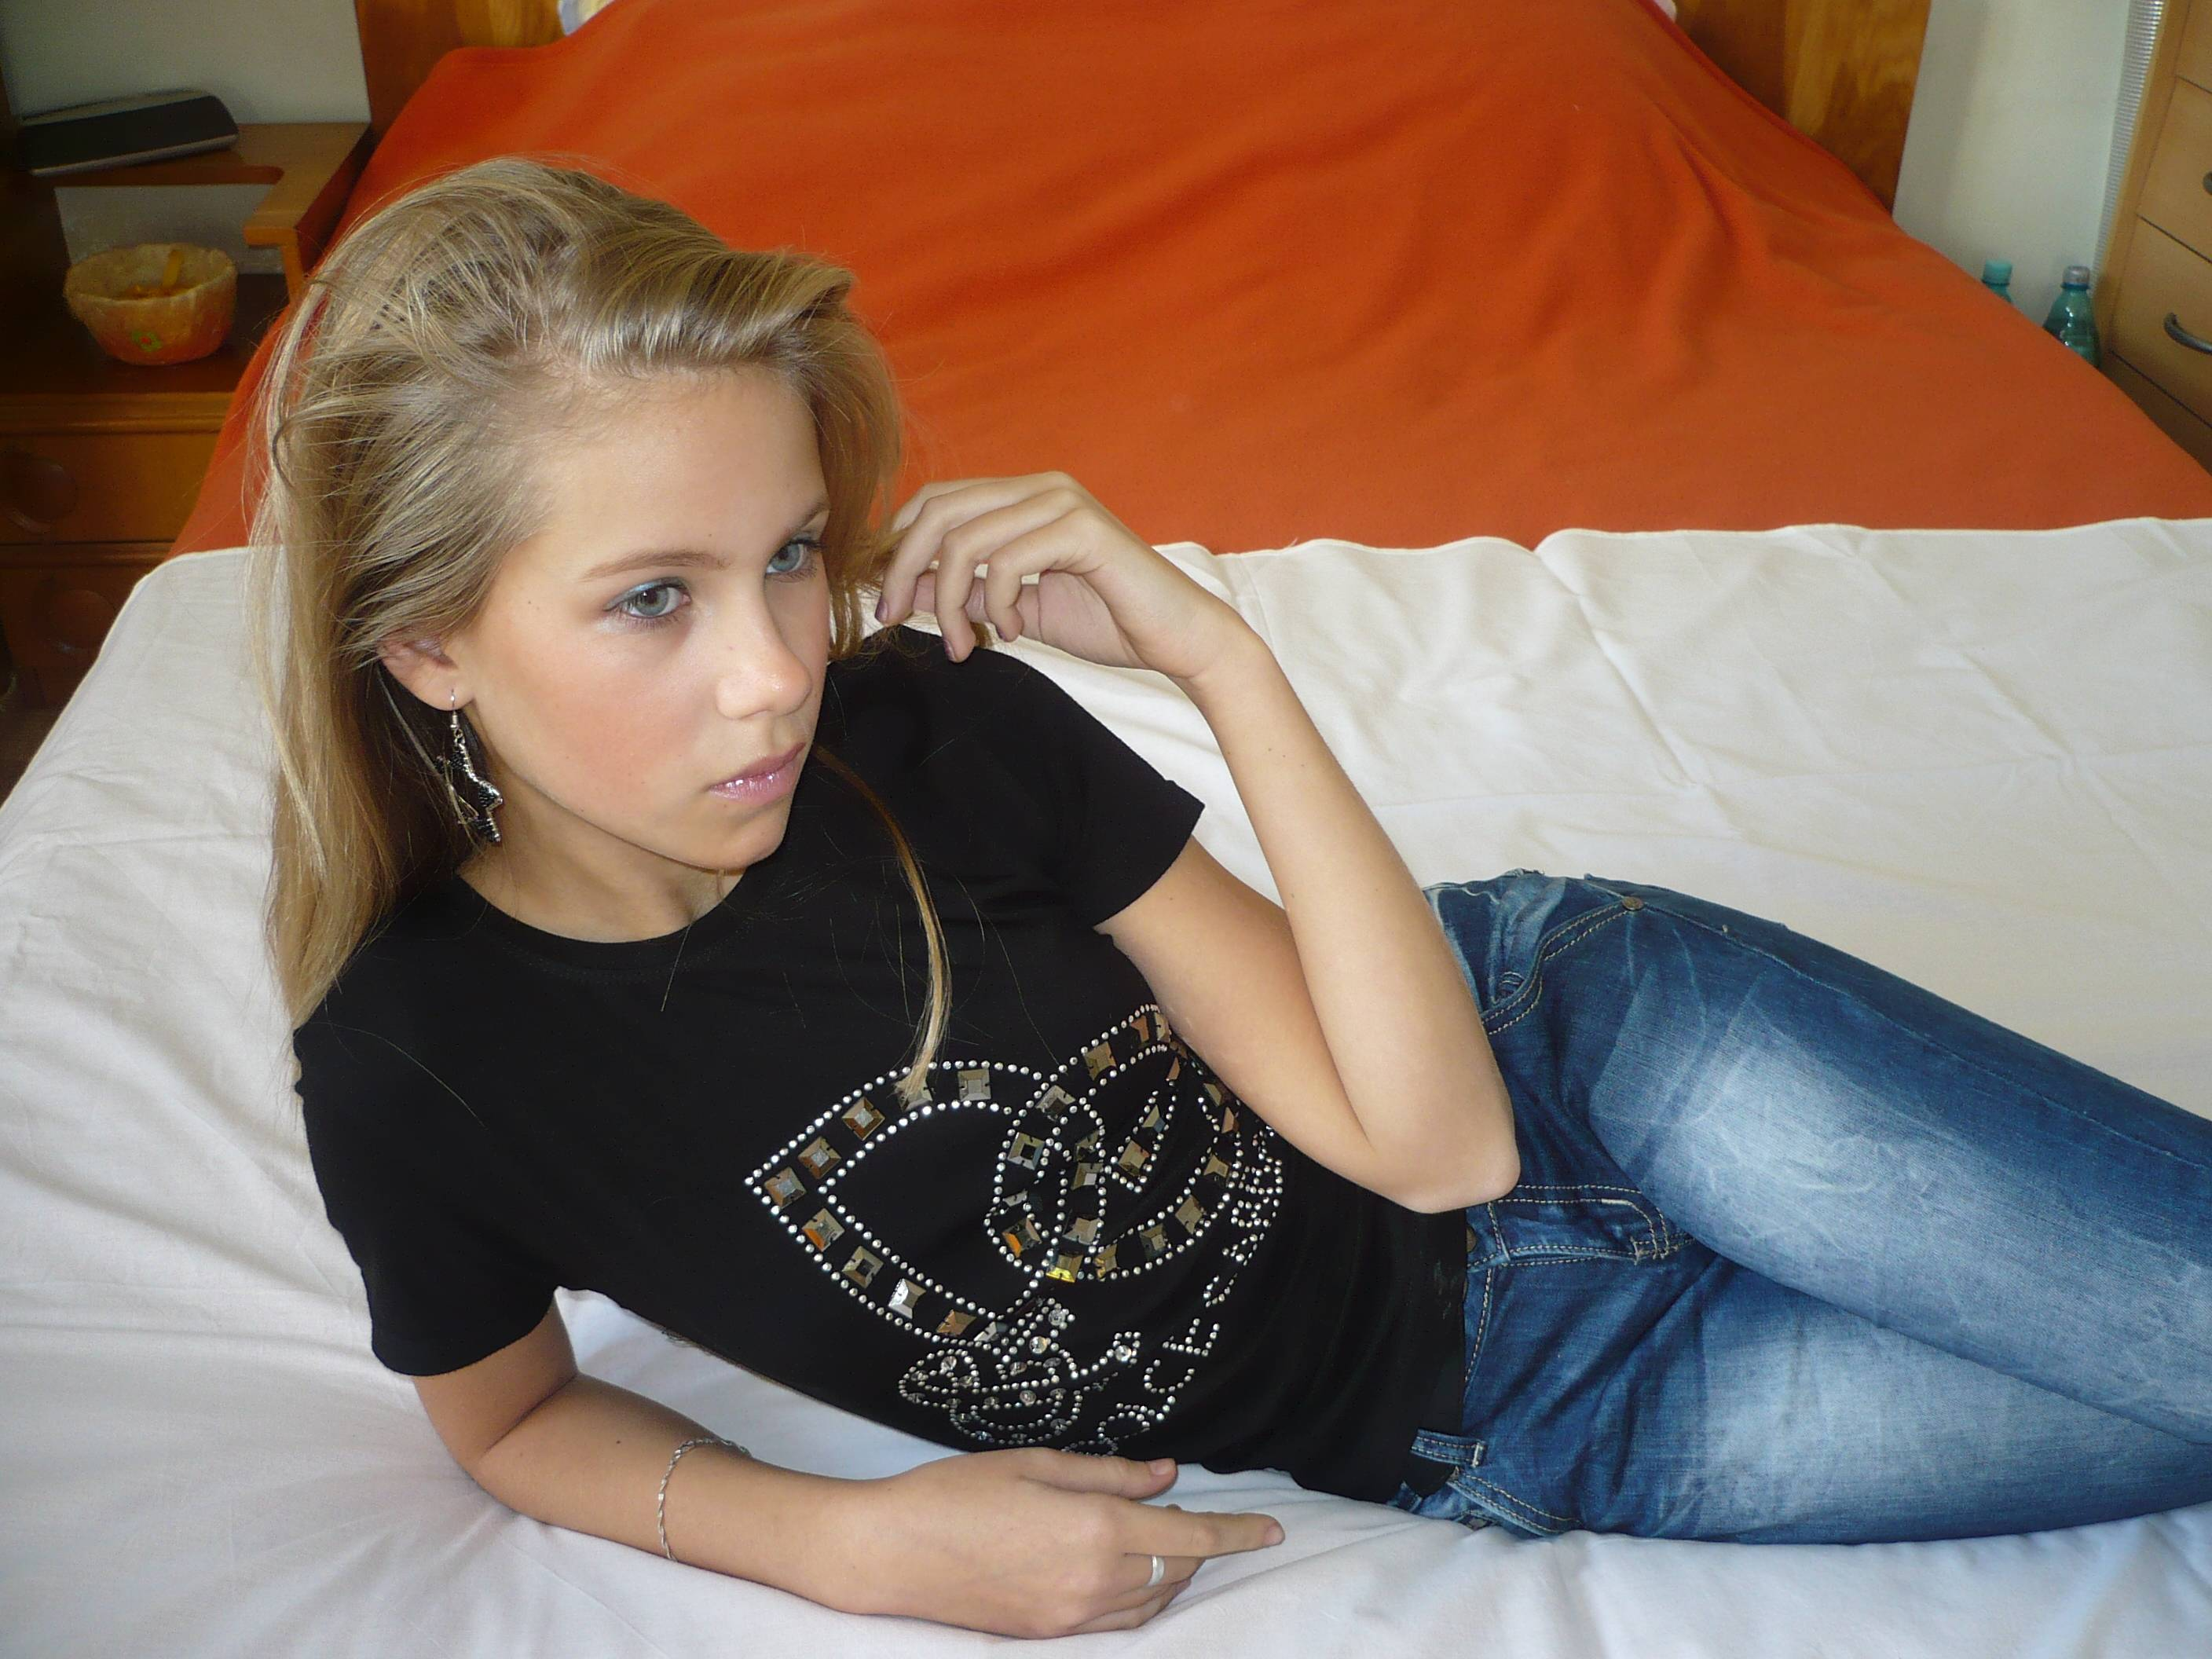 Image fap teen jeans